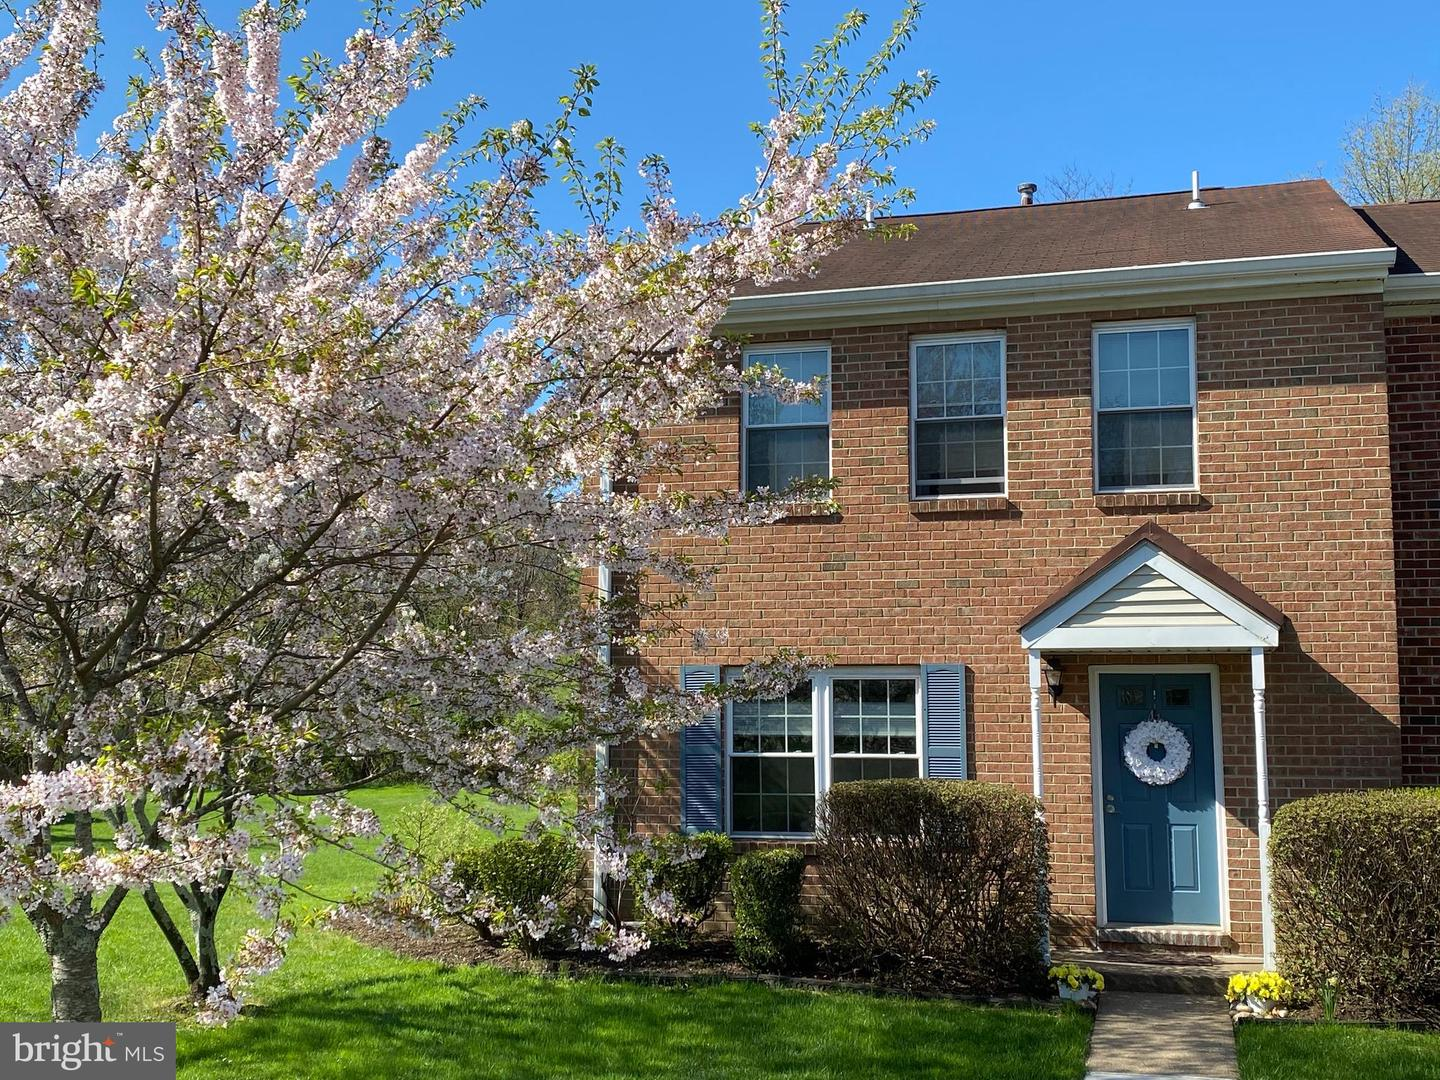 41 QUINCE CT, LAWRENCE TOWNSHIP, NJ 08648